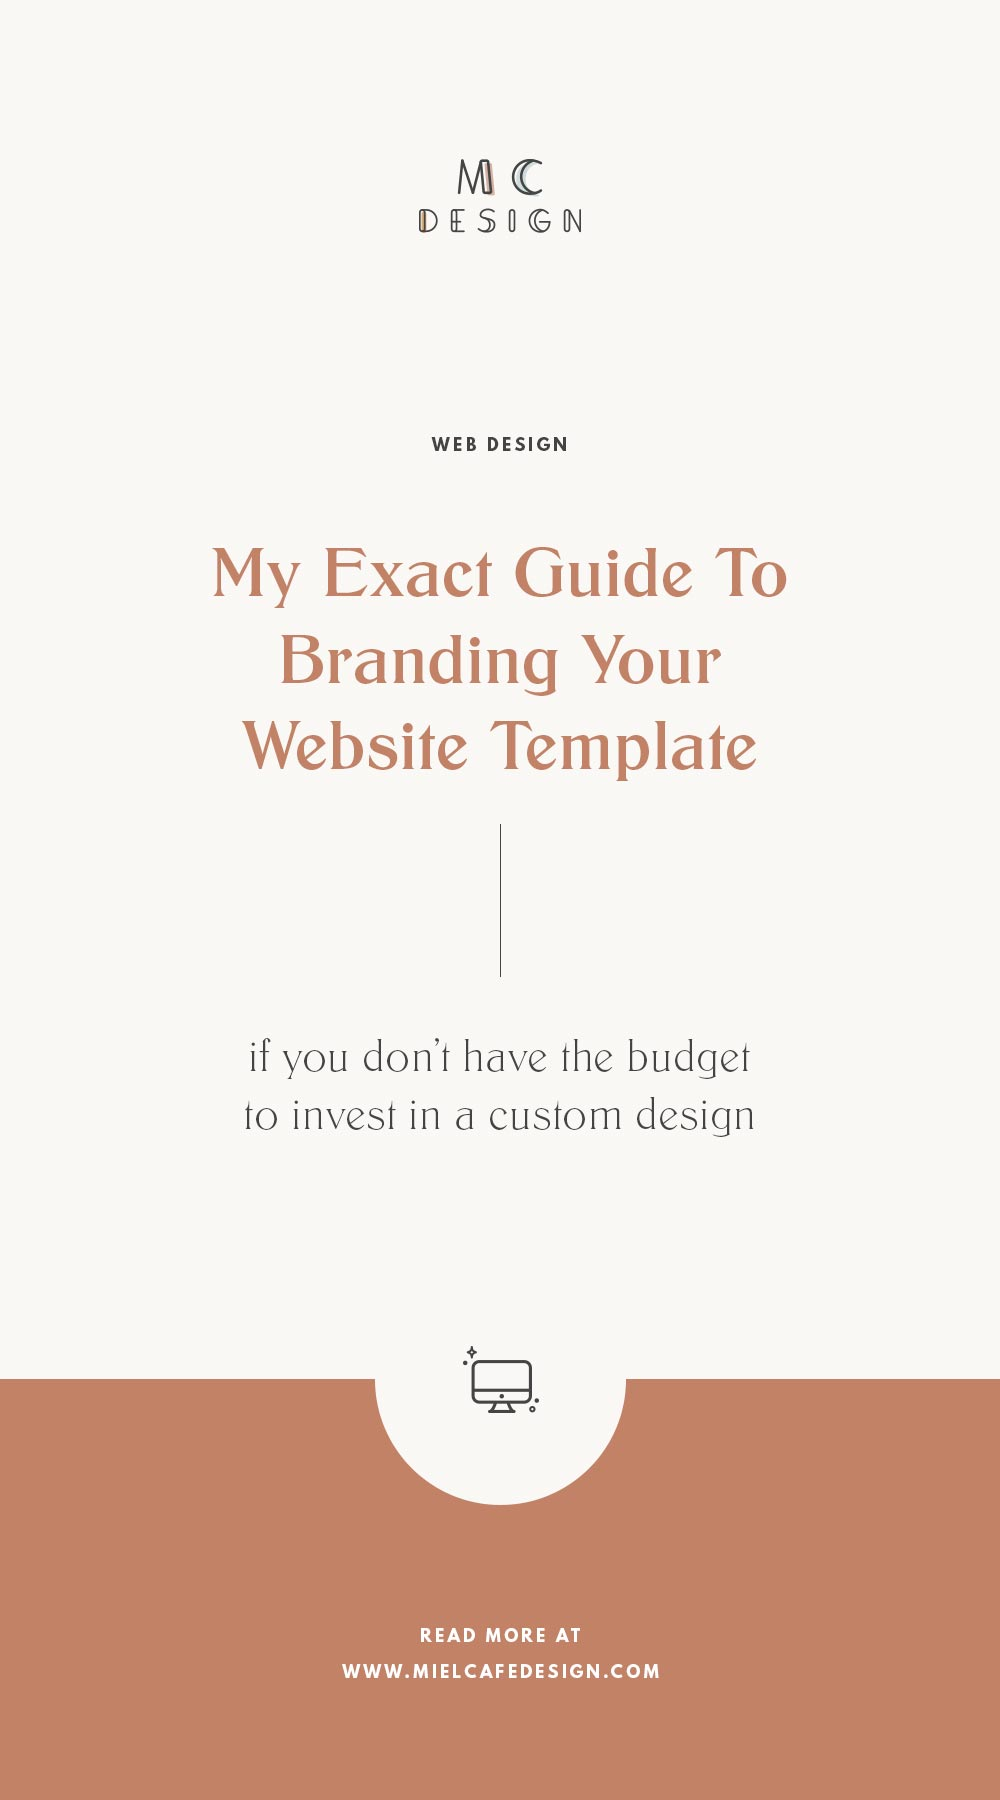 How to brand your website template: my exact guide to branding your premade template if you don't have the budget to invest in a custom design